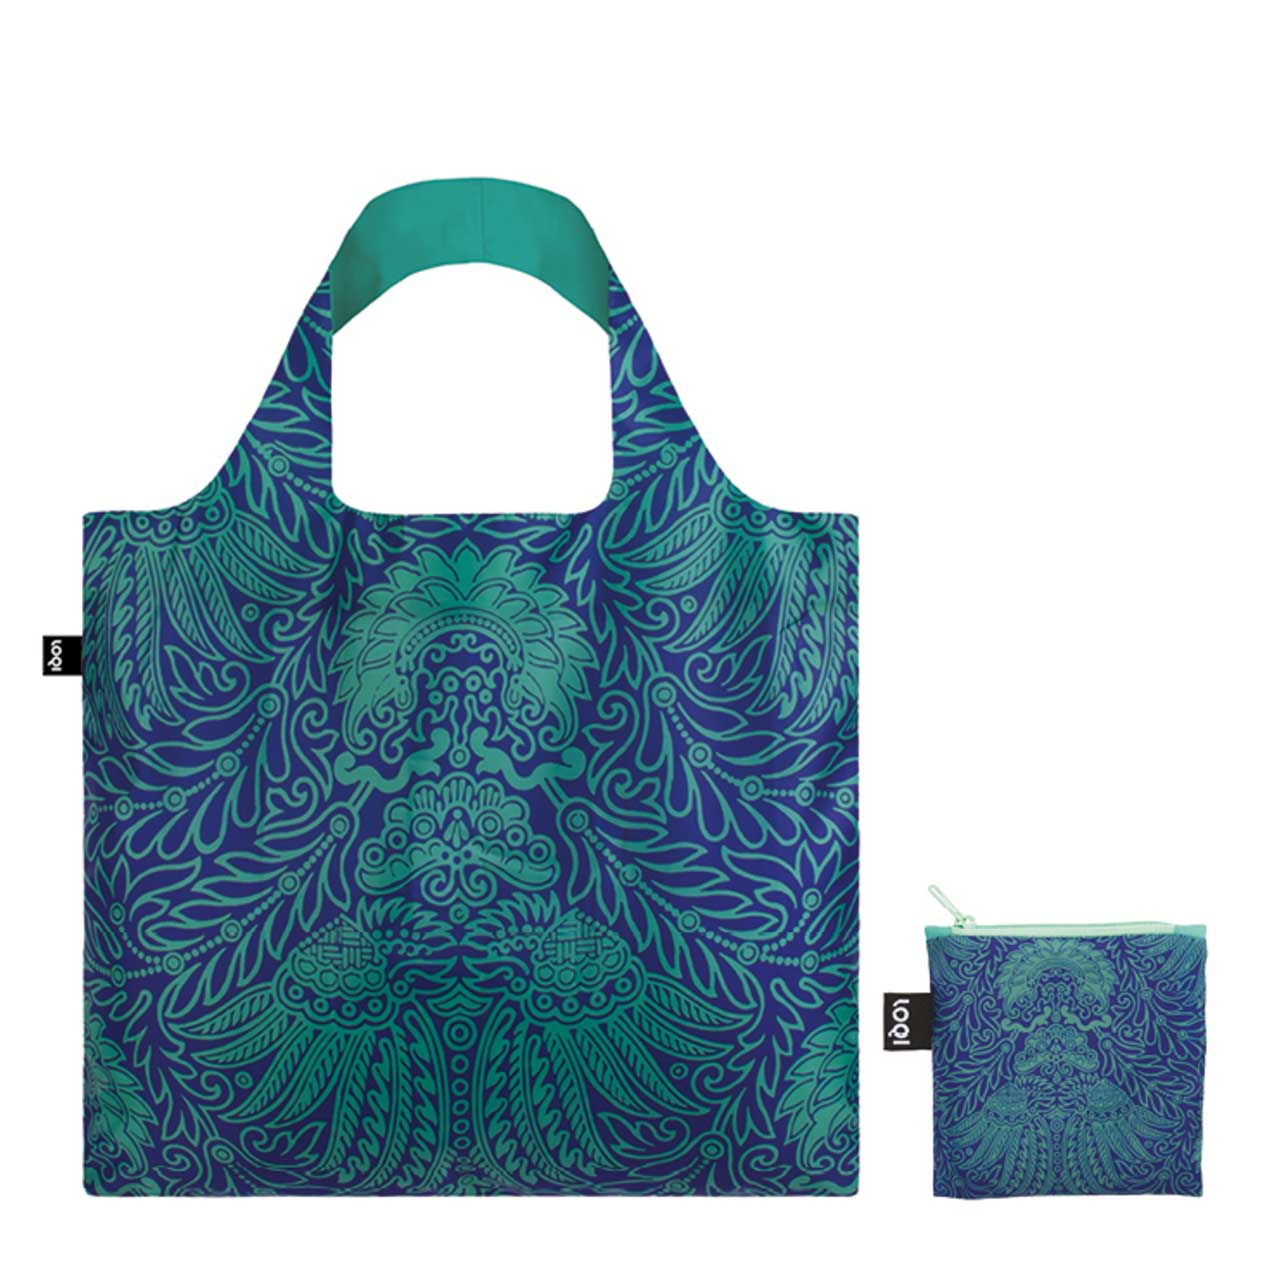 LOQI Japanese Decor Bag